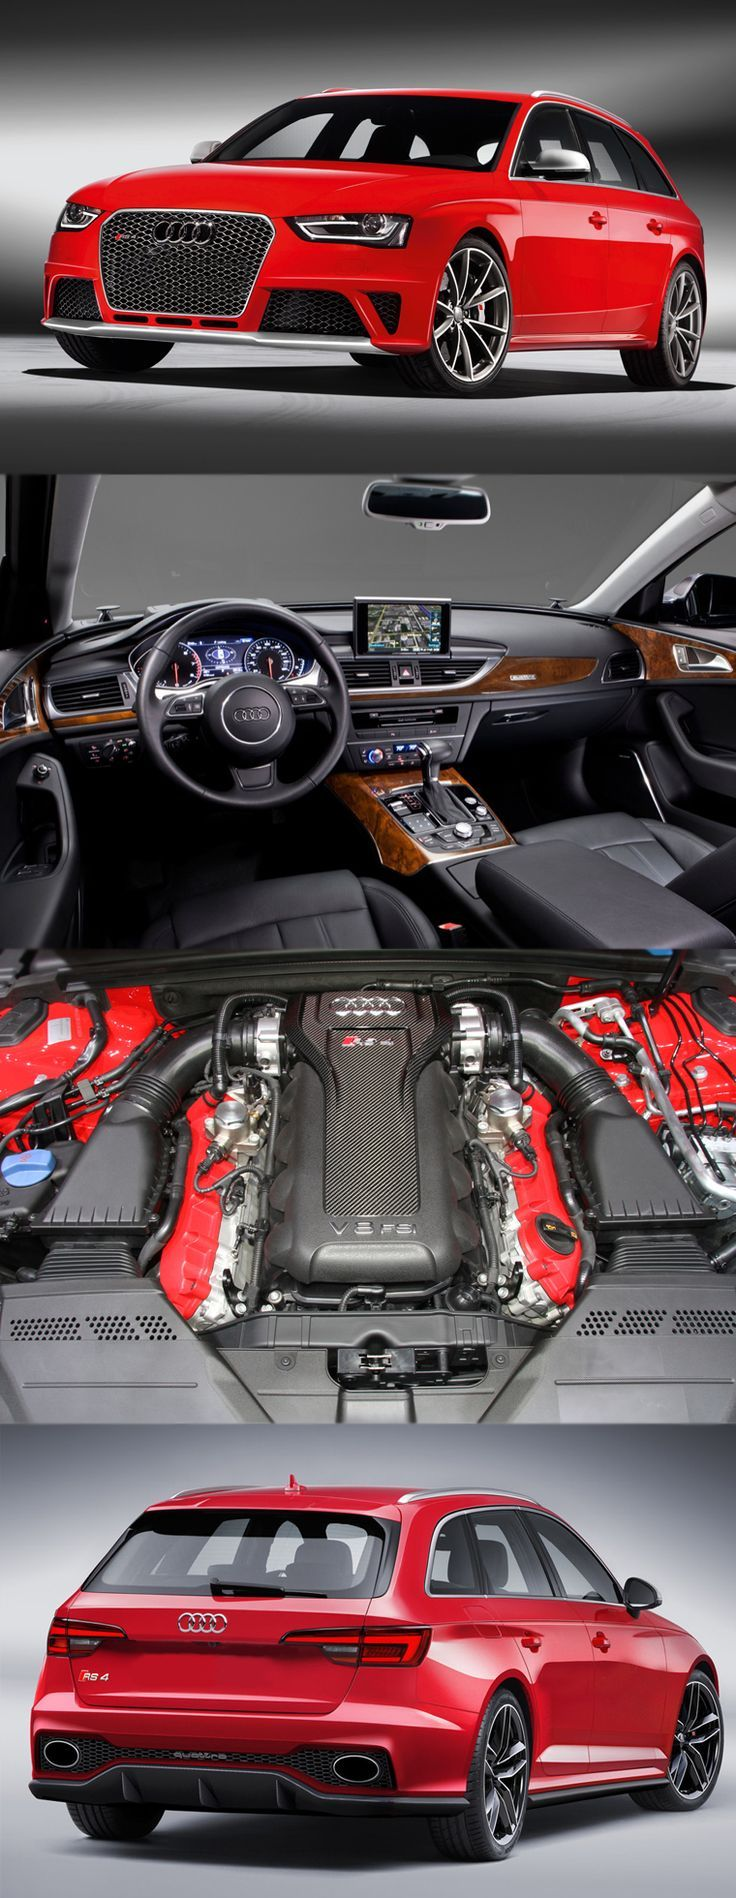 Cool Audi 2017: Audi RS4 Avant Set to Get V6 Turbo Engines Get more details At : www.globalengin... Car24 - World Bayers Check more at http://car24.top/2017/2017/08/19/audi-2017-audi-rs4-avant-set-to-get-v6-turbo-engines-get-more-details-at-www-globalengin-car24-world-bayers/